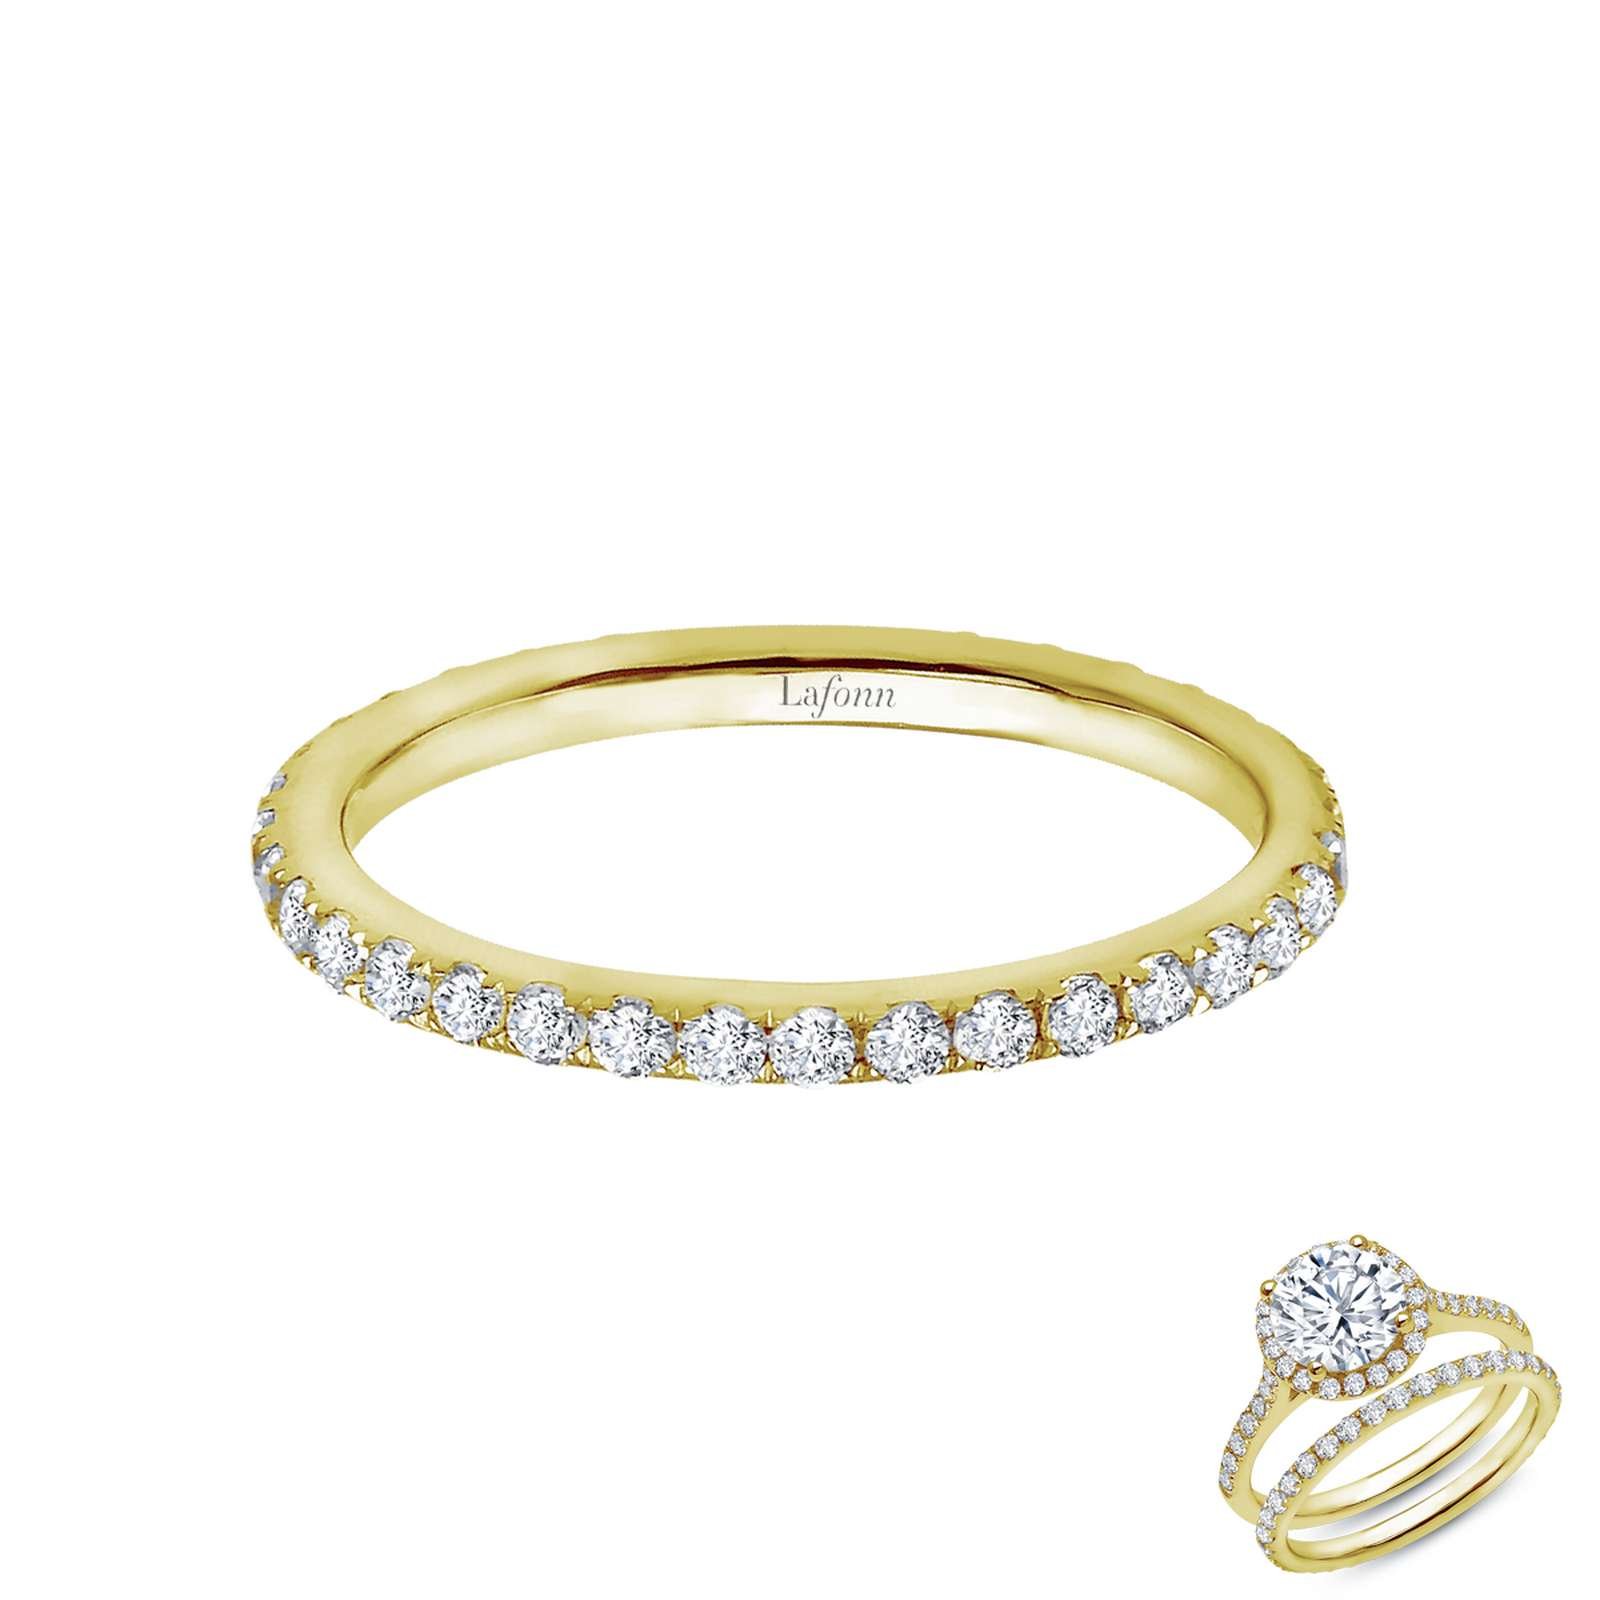 Stackables Simulated Diamond Gold Ring - Timeless classics for everyday wear. Wear it by itself or stack with other rings. This ring is set with Lafonn's signature Lassaire simulated diamonds in gold plated sterling silver.